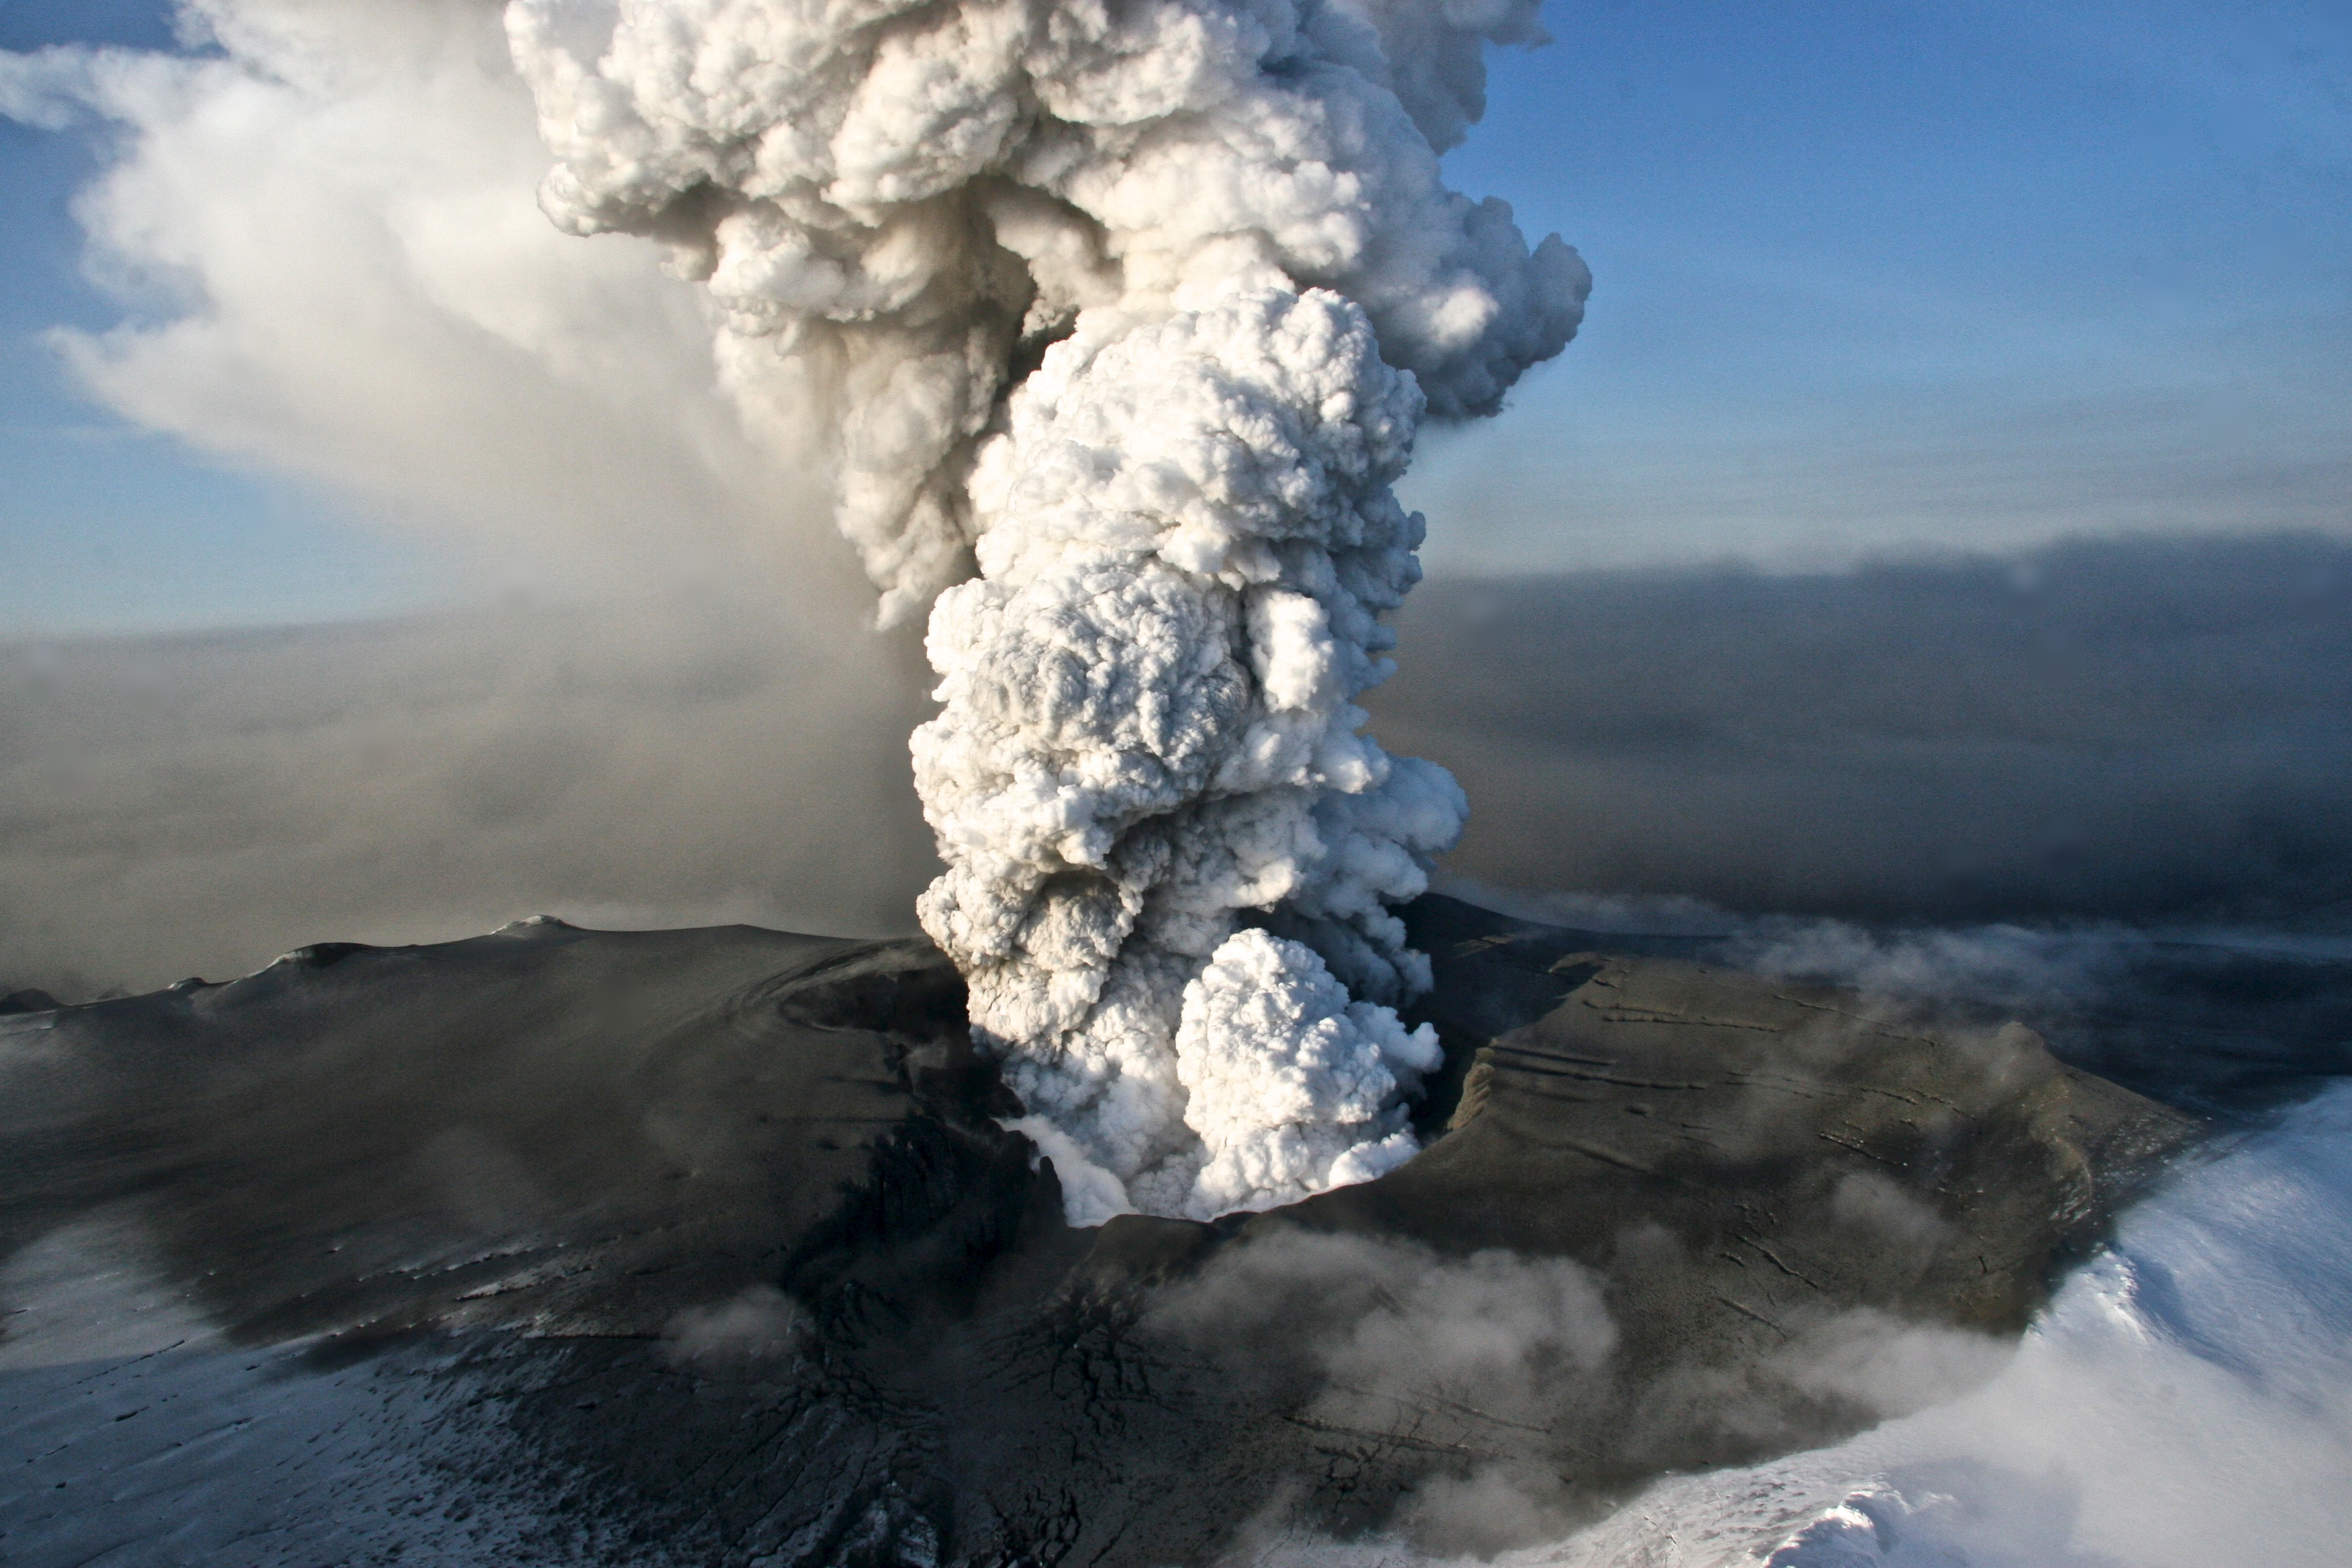 What are some volcanos that have erupted since 2010?